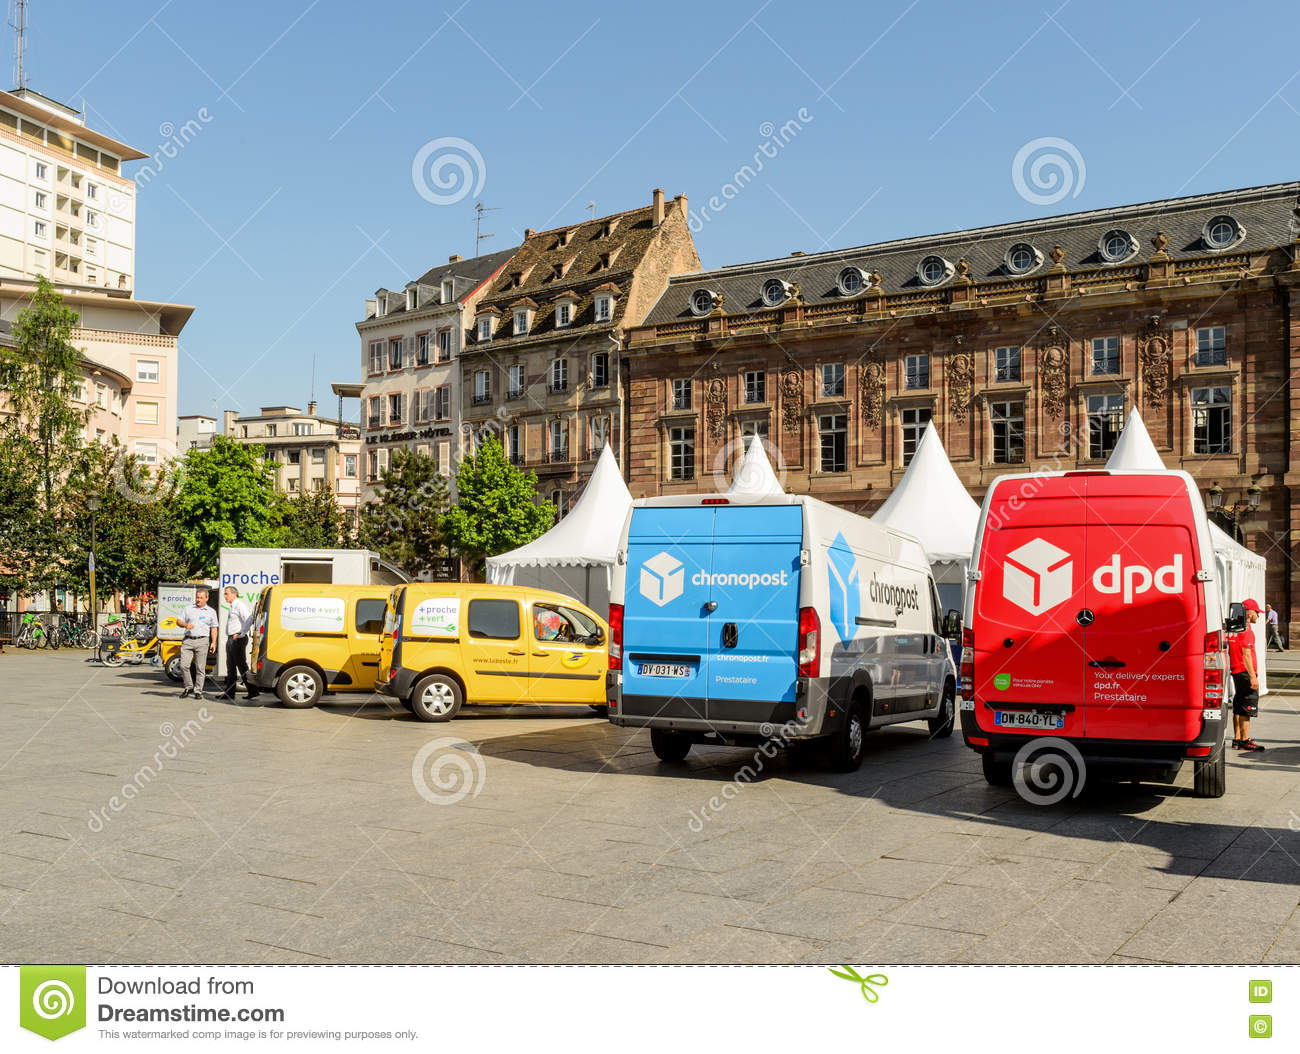 chronopost dpd la poste vans in a row city editorial image image of freight above 81094610. Black Bedroom Furniture Sets. Home Design Ideas